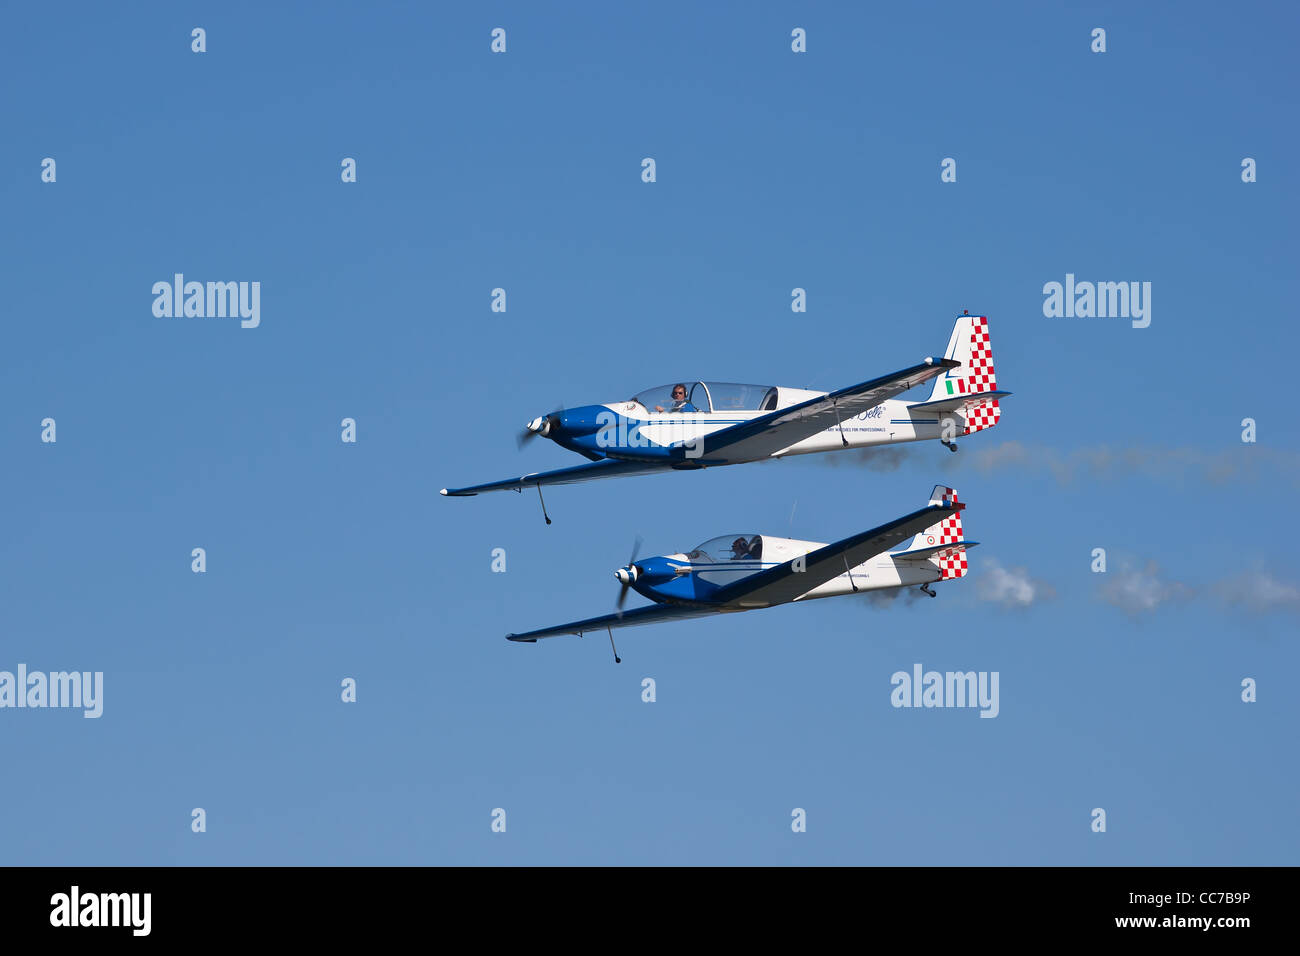 Fournier RF-3 and RF-5 during an exhibition in an airshow - Stock Image